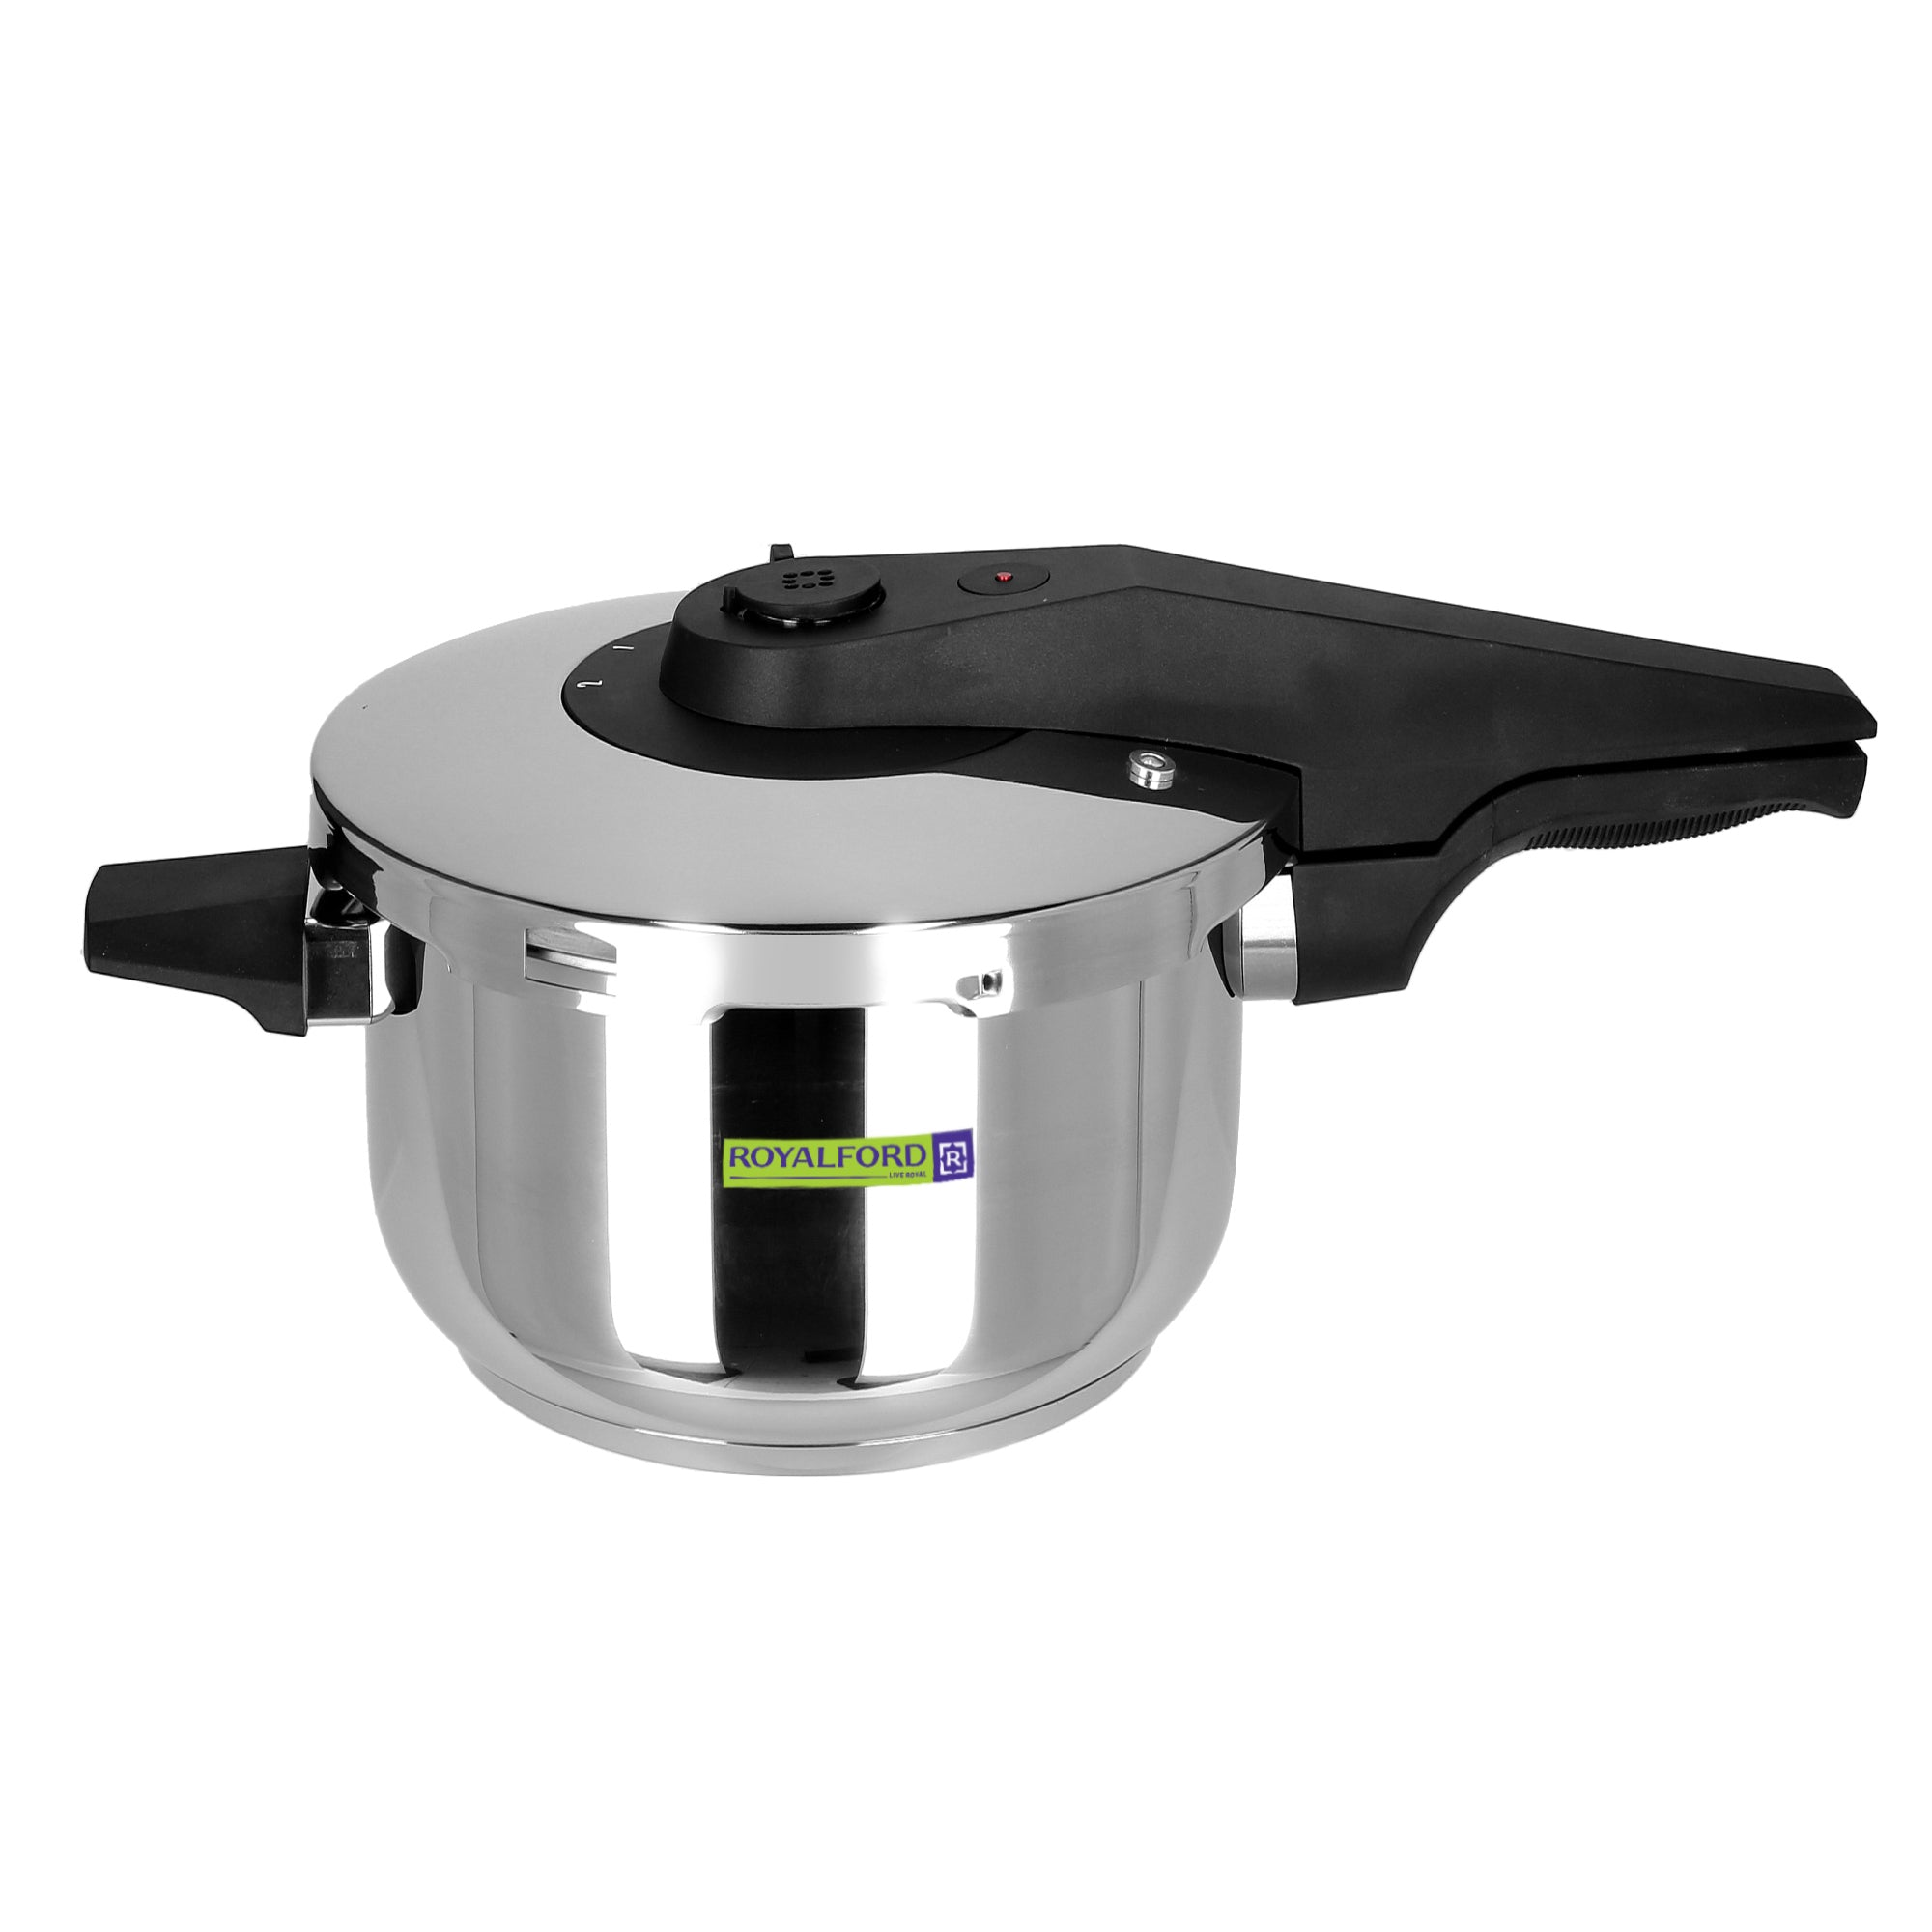 Royalford RF8605 Asan Induction Pressure Cooker, 7L